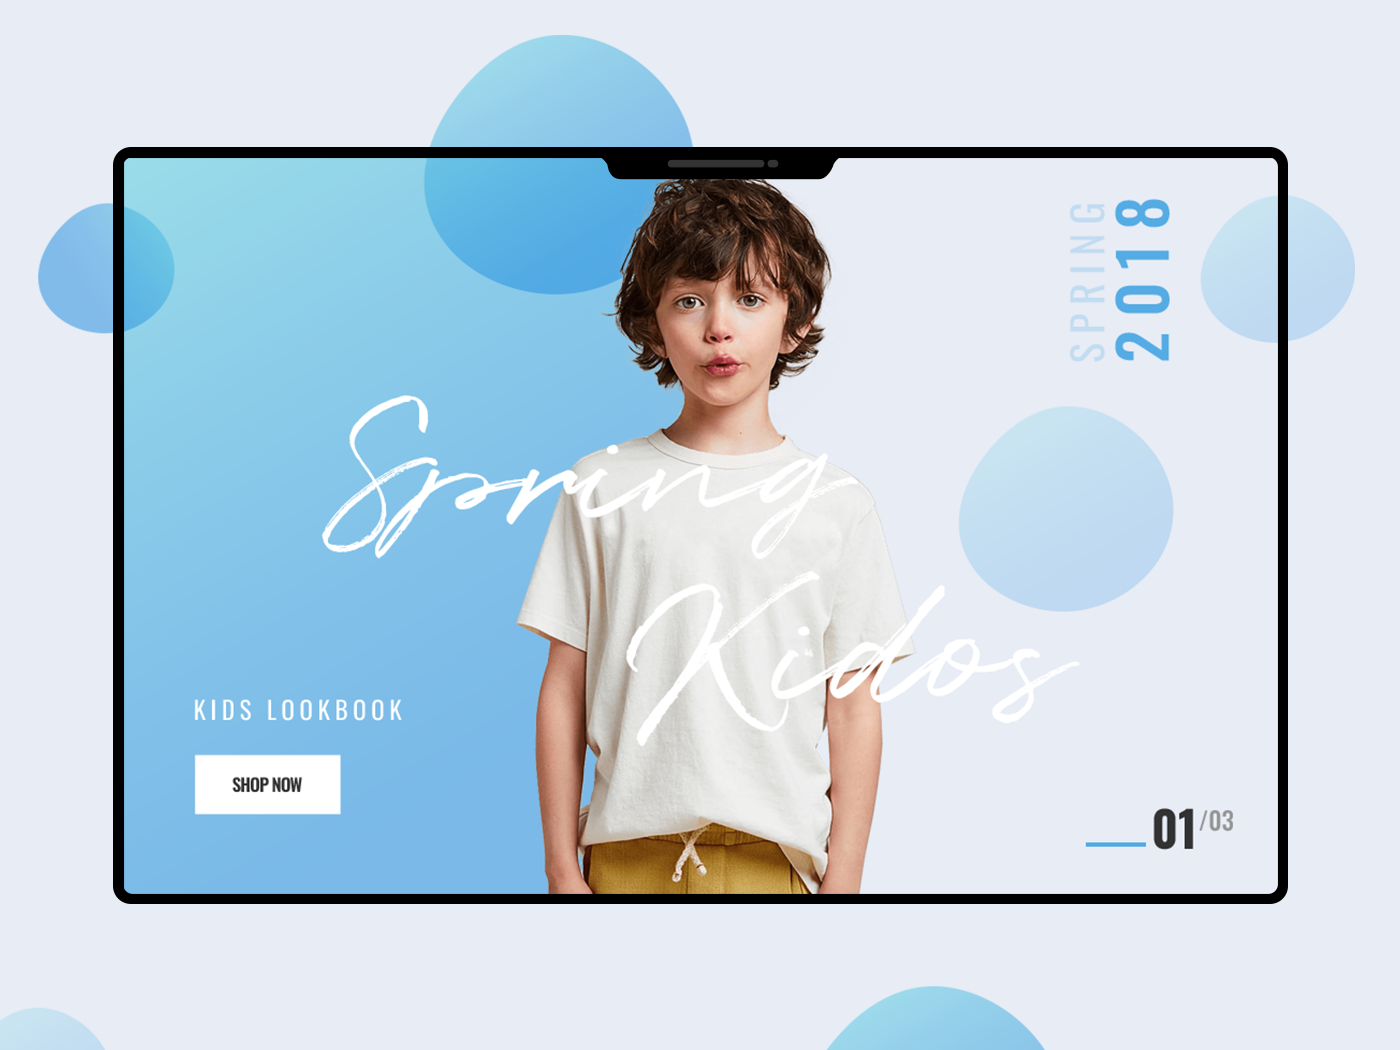 E Commerce Theme Banner Design Ii By Potenza Global Solutions On Dribbble